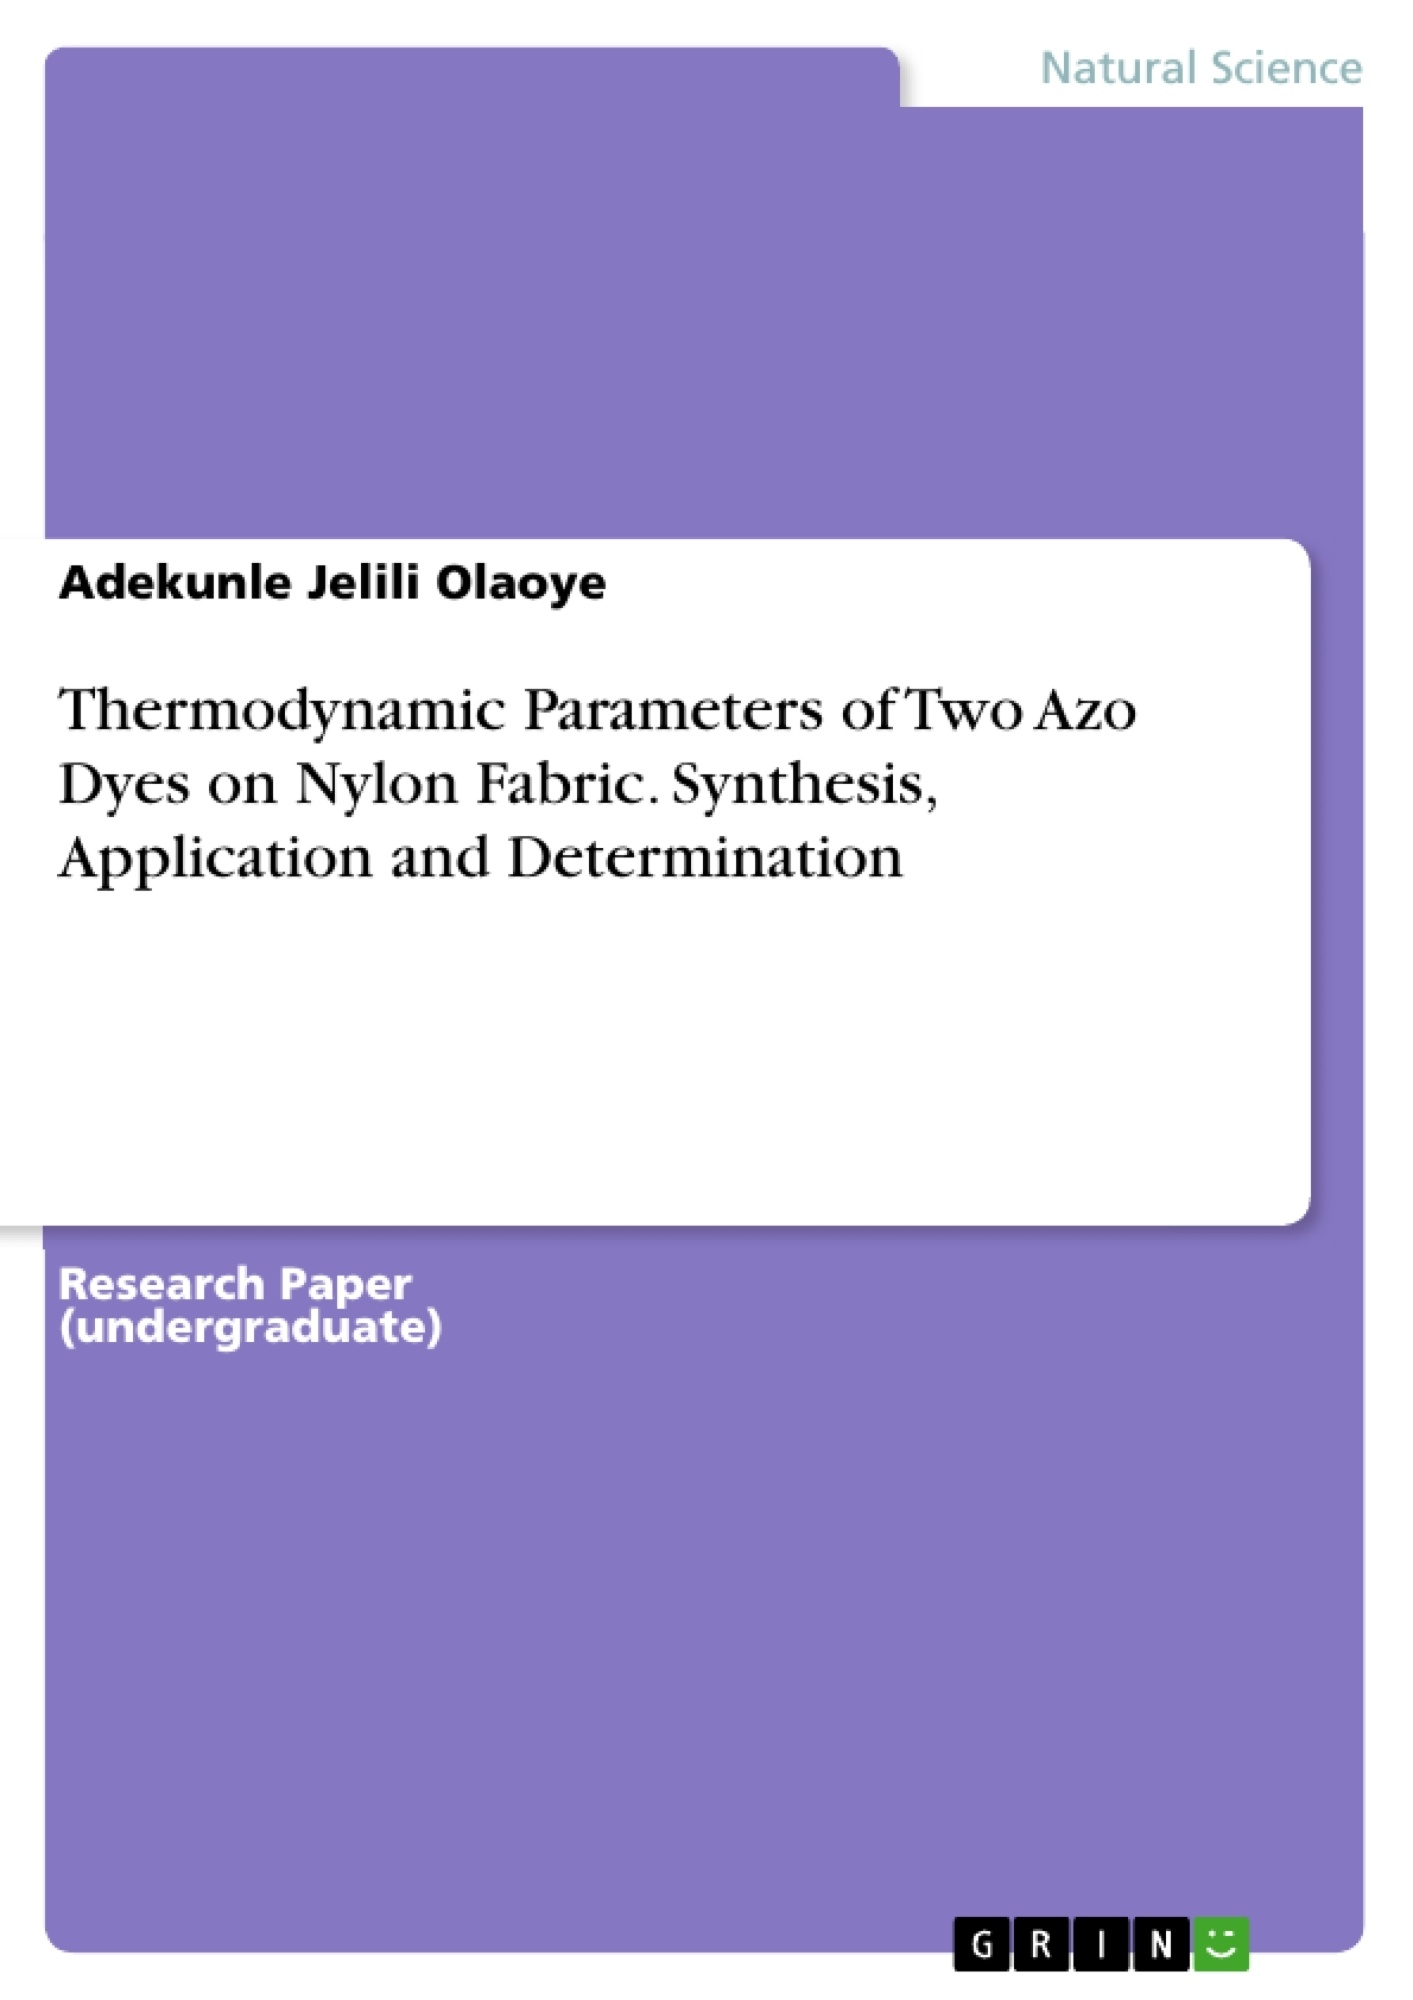 Title: Thermodynamic Parameters of Two Azo Dyes on Nylon Fabric. Synthesis, Application and Determination